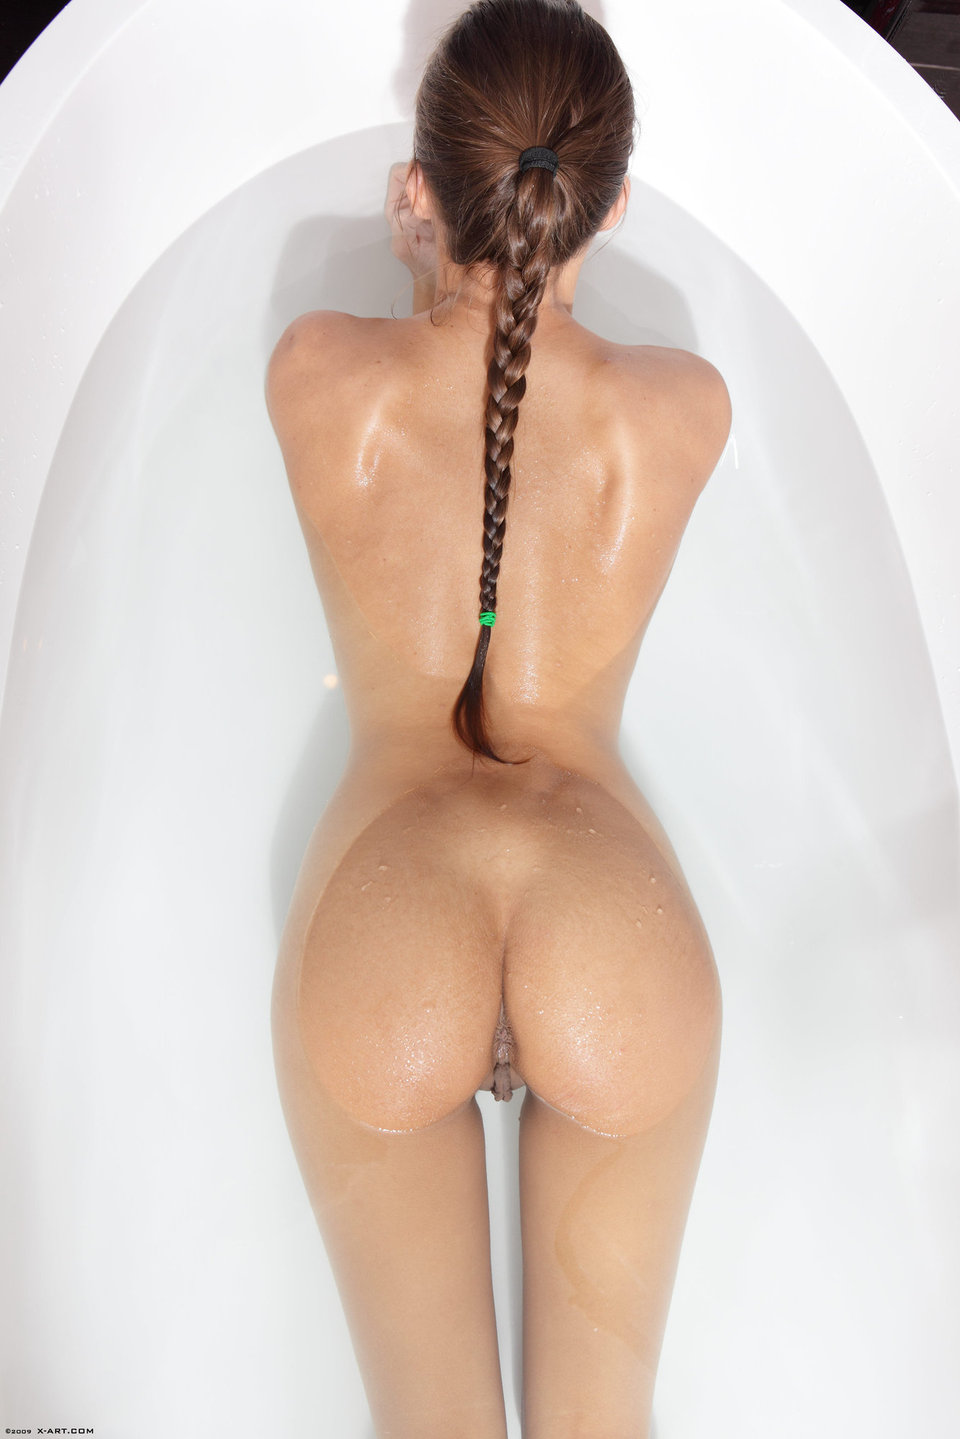 Dominique Slippery When Wet – nude photo gallery | Daily Girls @ Female Update